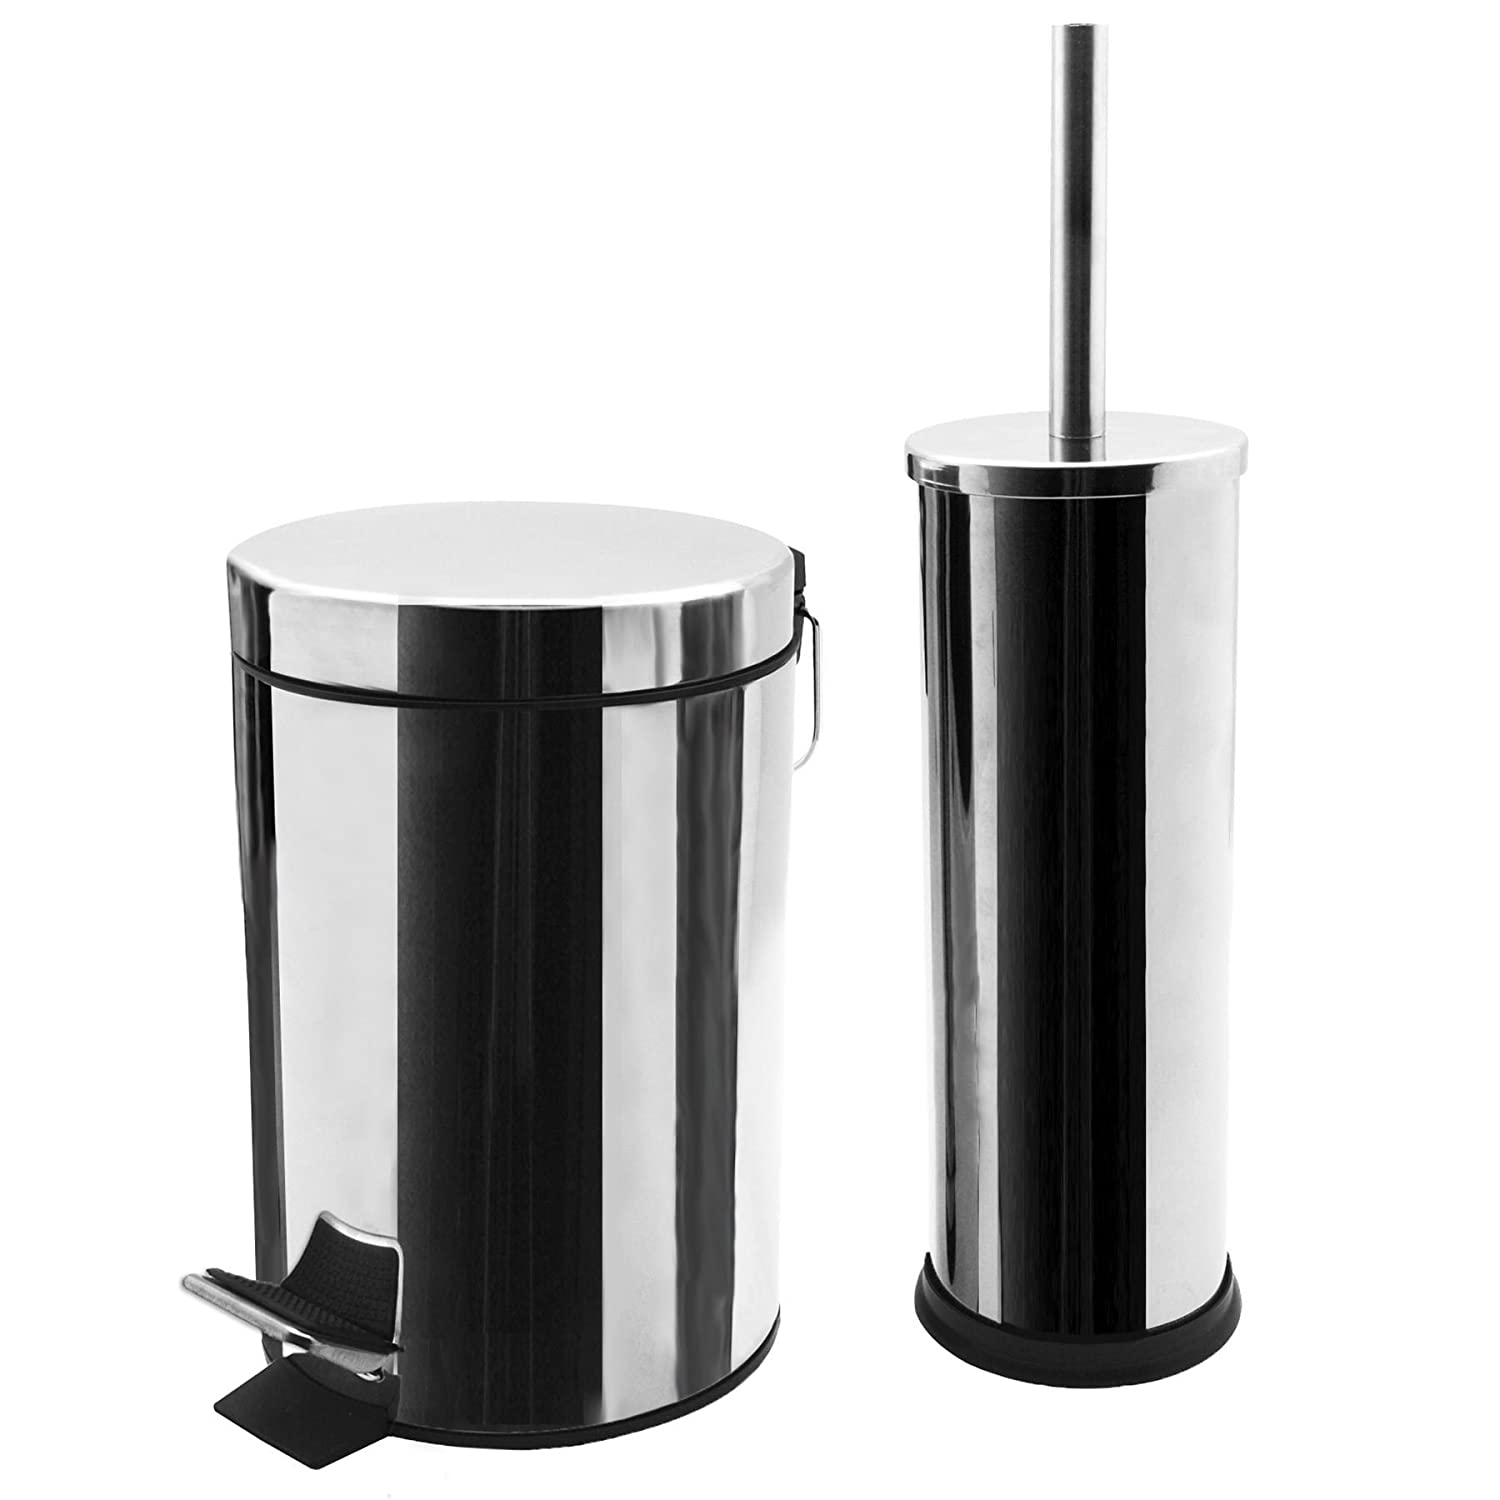 Harbour Housewares Bathroom Pedal Bin and Toilet Brush Set - 3 Litre Bin - Chrome Finish